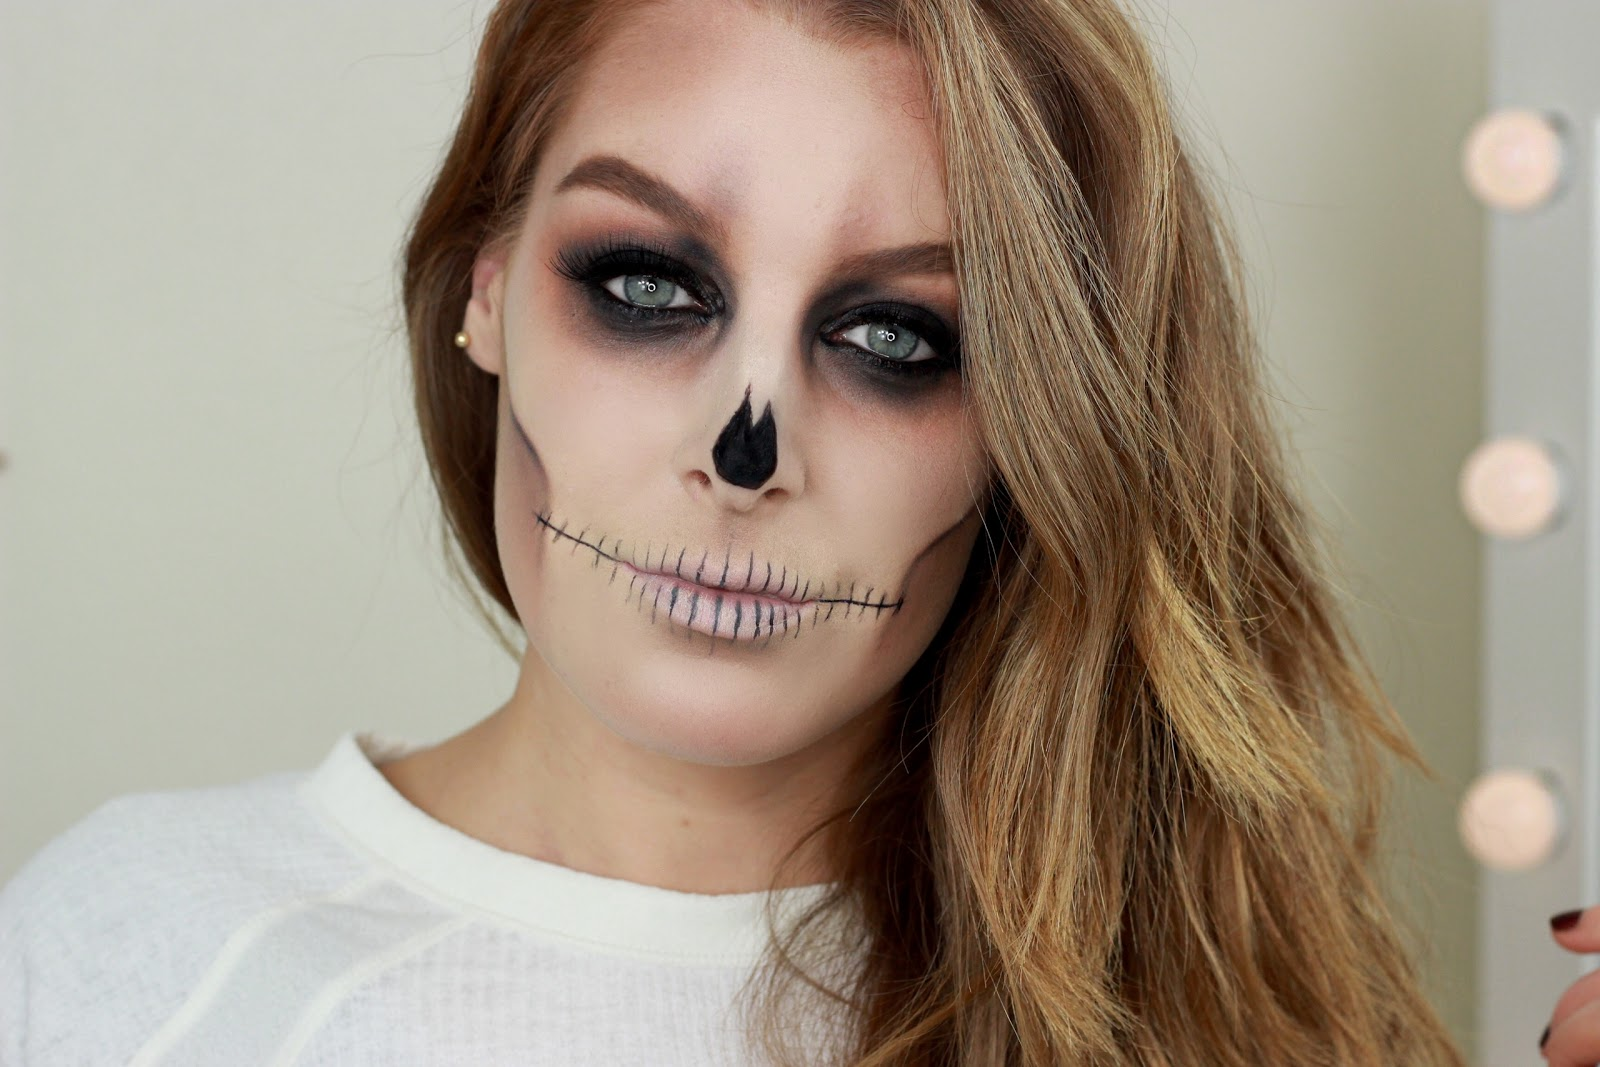 Skull makeup Tutorial, Halloween Makeup